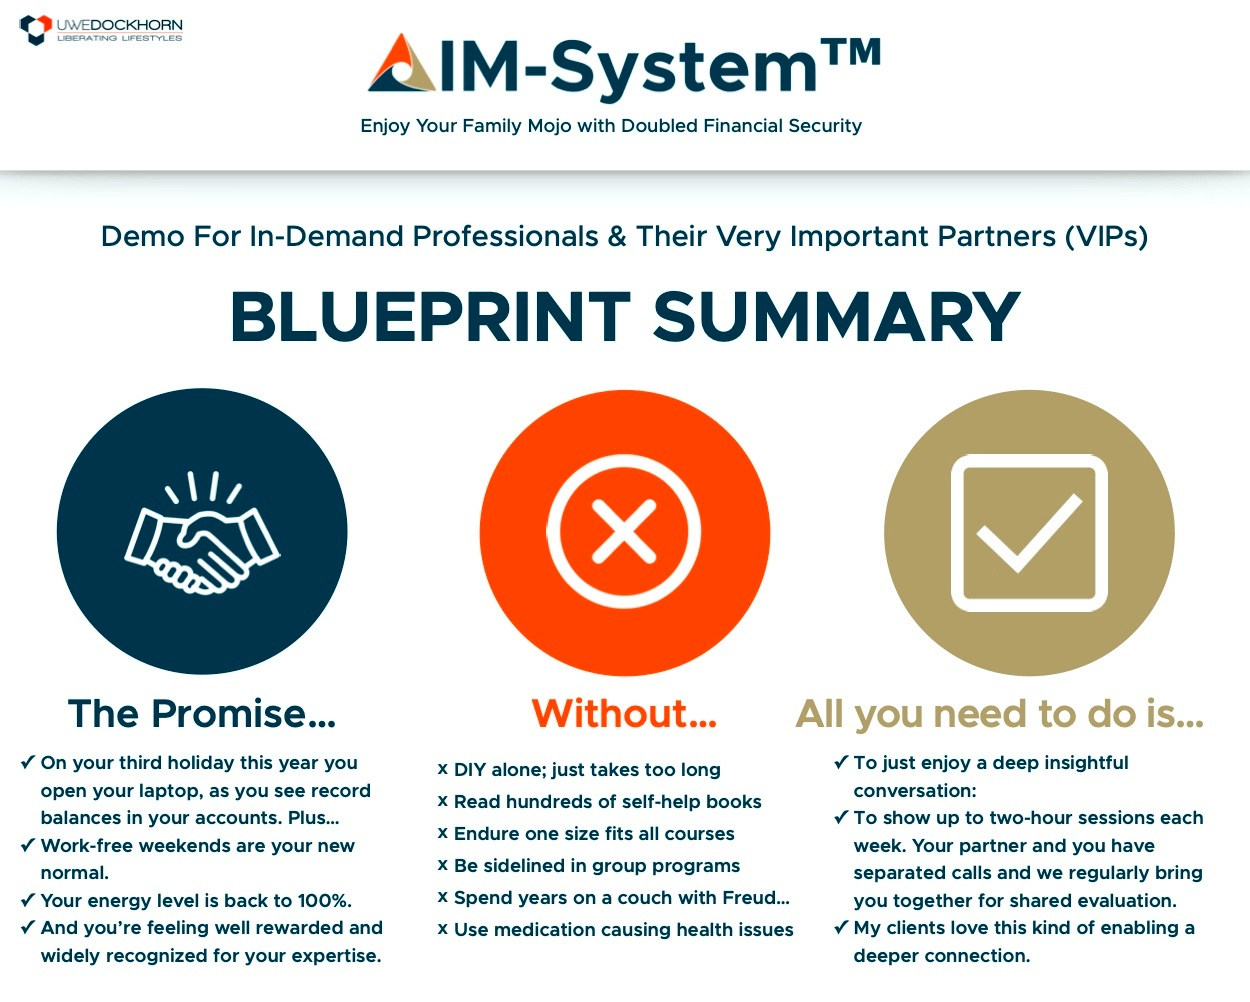 AIM-System™-BLUEPRINT